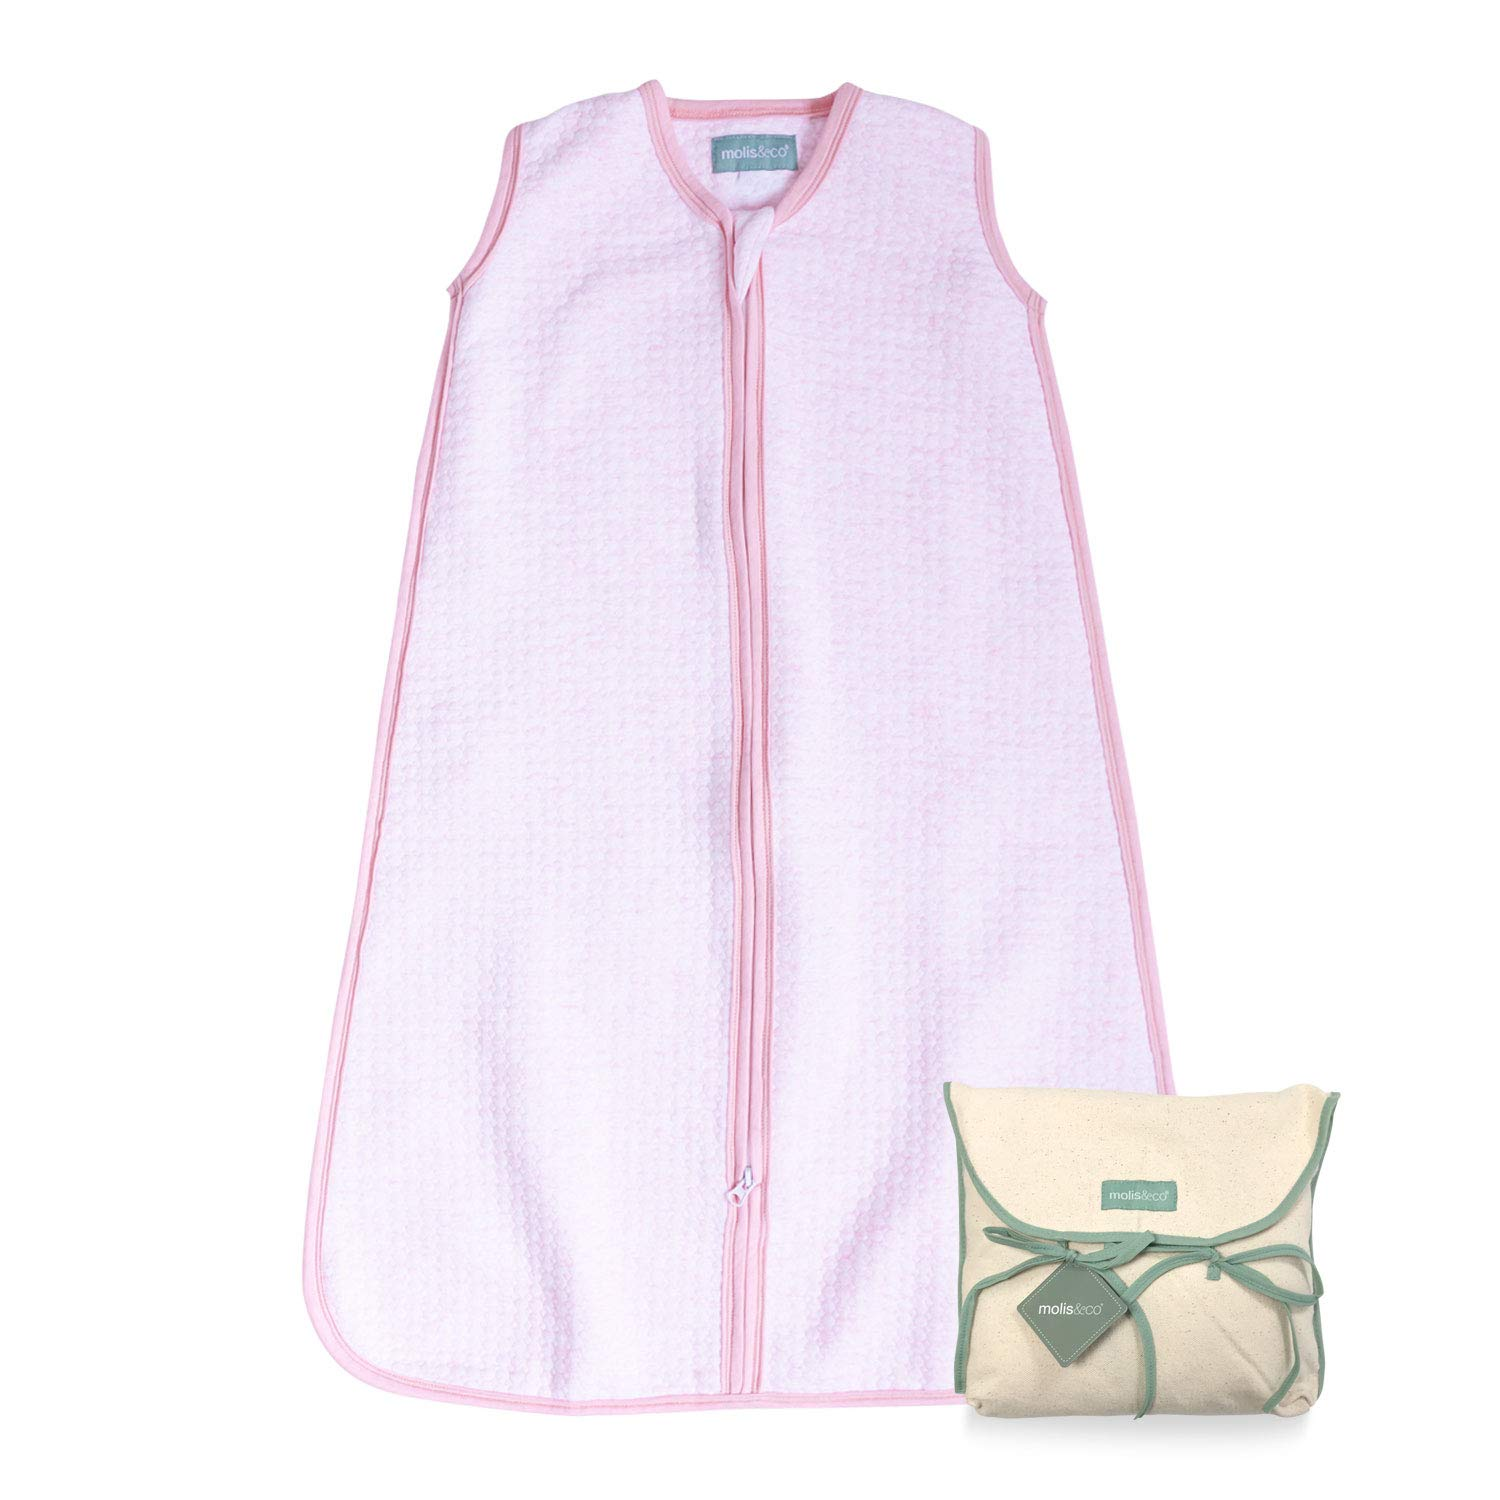 Candy Soft and Cozy molis/&co 1.0 TOG Baby Sleeping Bag 0 to 6 Months Ideal The Spring and Autumn use 100/% Organic Cotton Lightly Padded. Pink